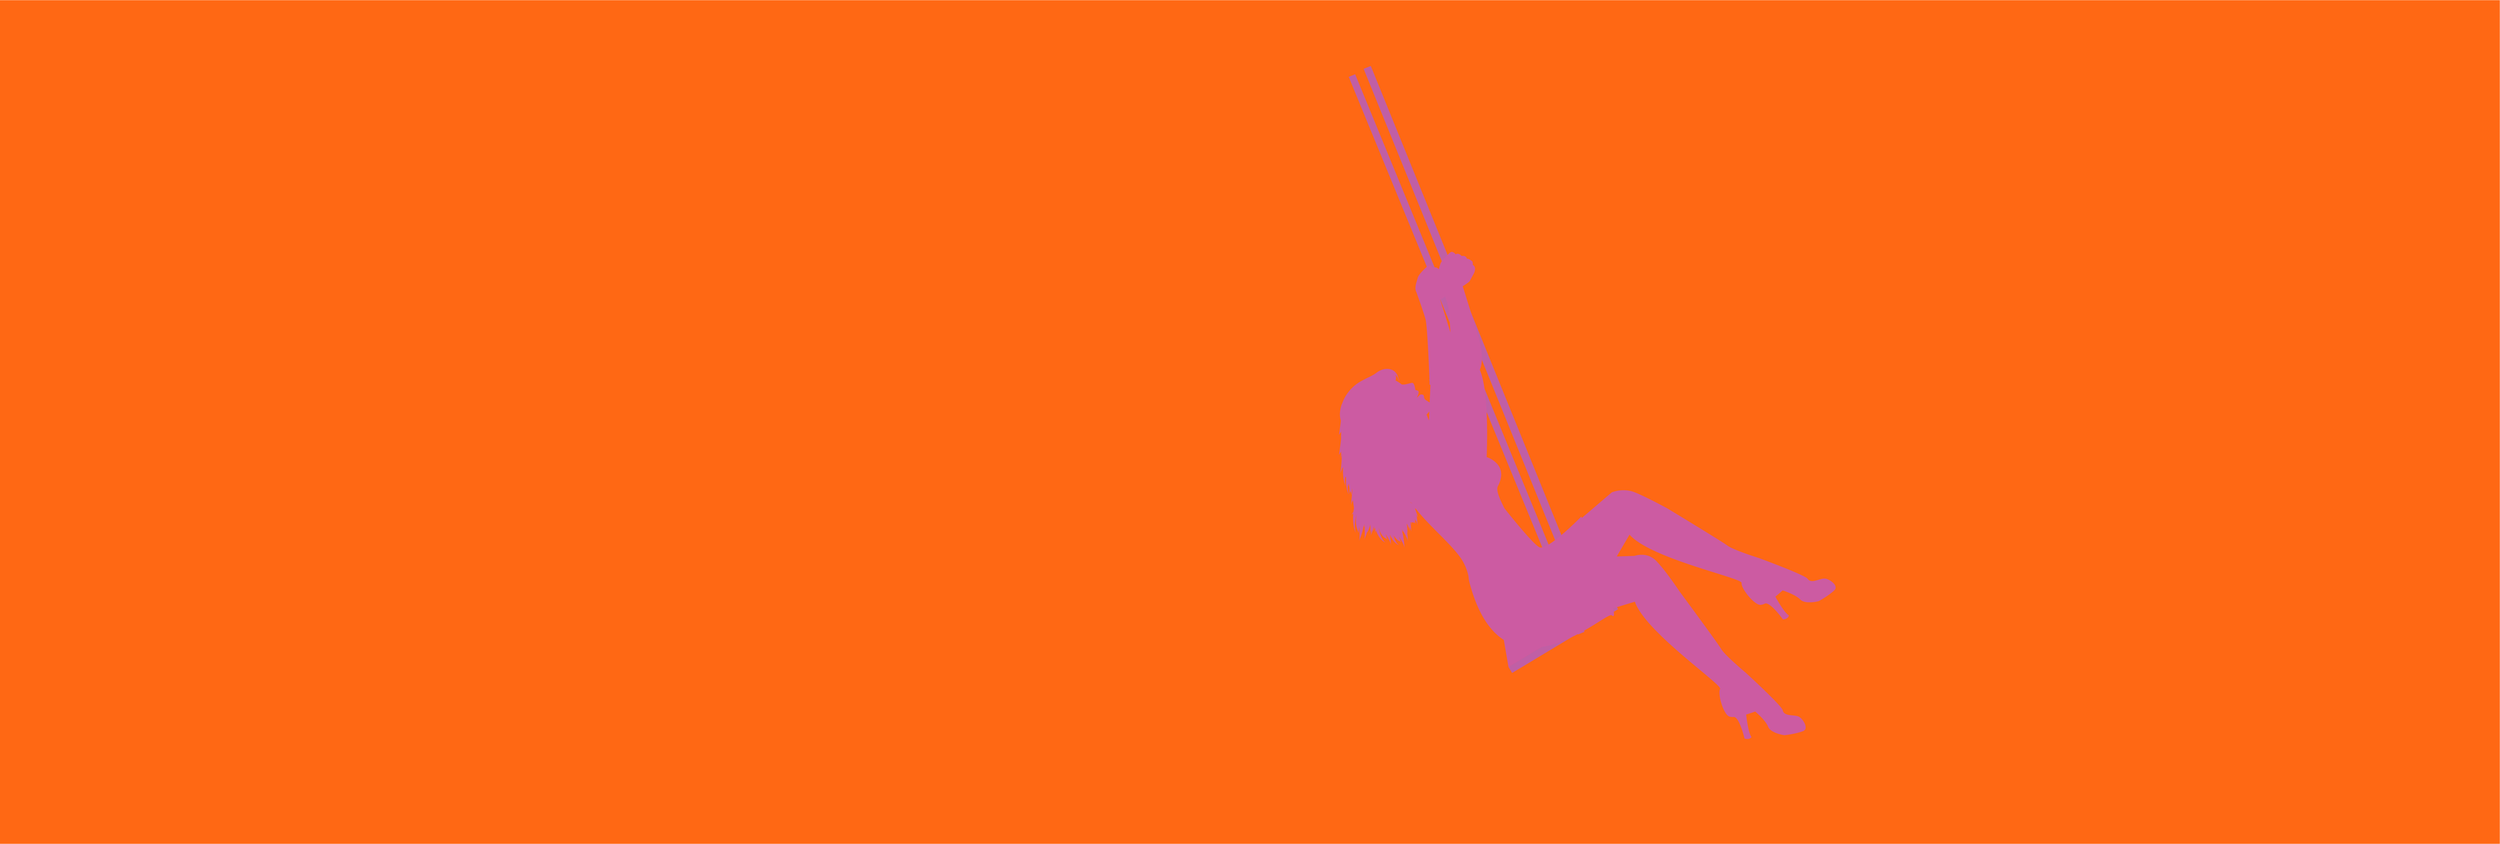 Lady in pink with orange background.png